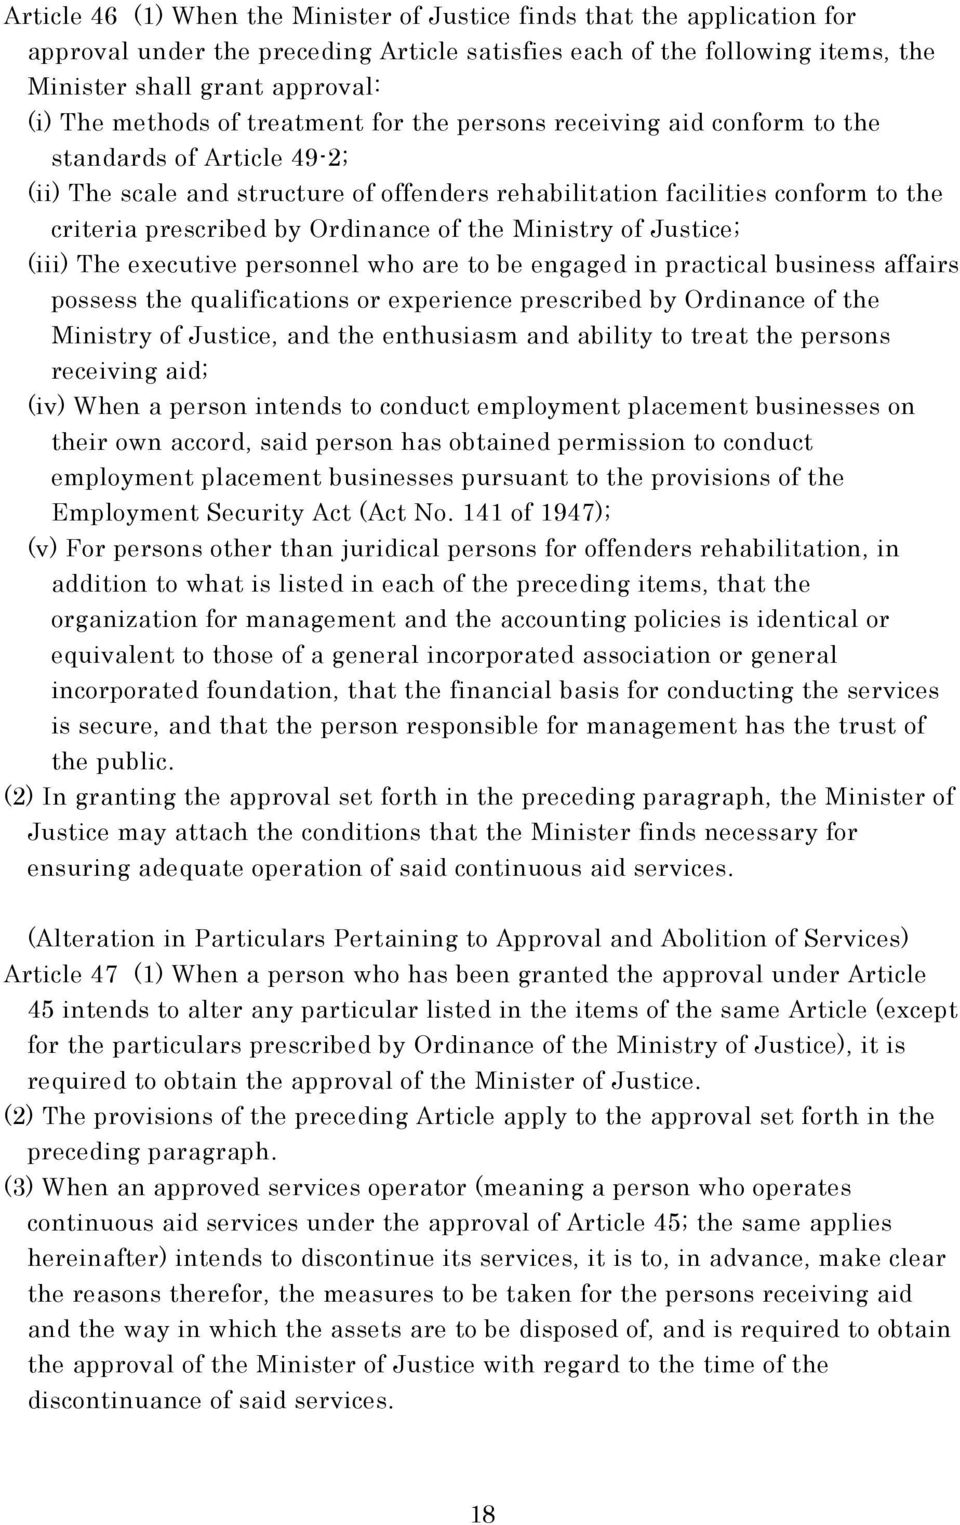 Ordinance of the Ministry of Justice; (iii) The executive personnel who are to be engaged in practical business affairs possess the qualifications or experience prescribed by Ordinance of the